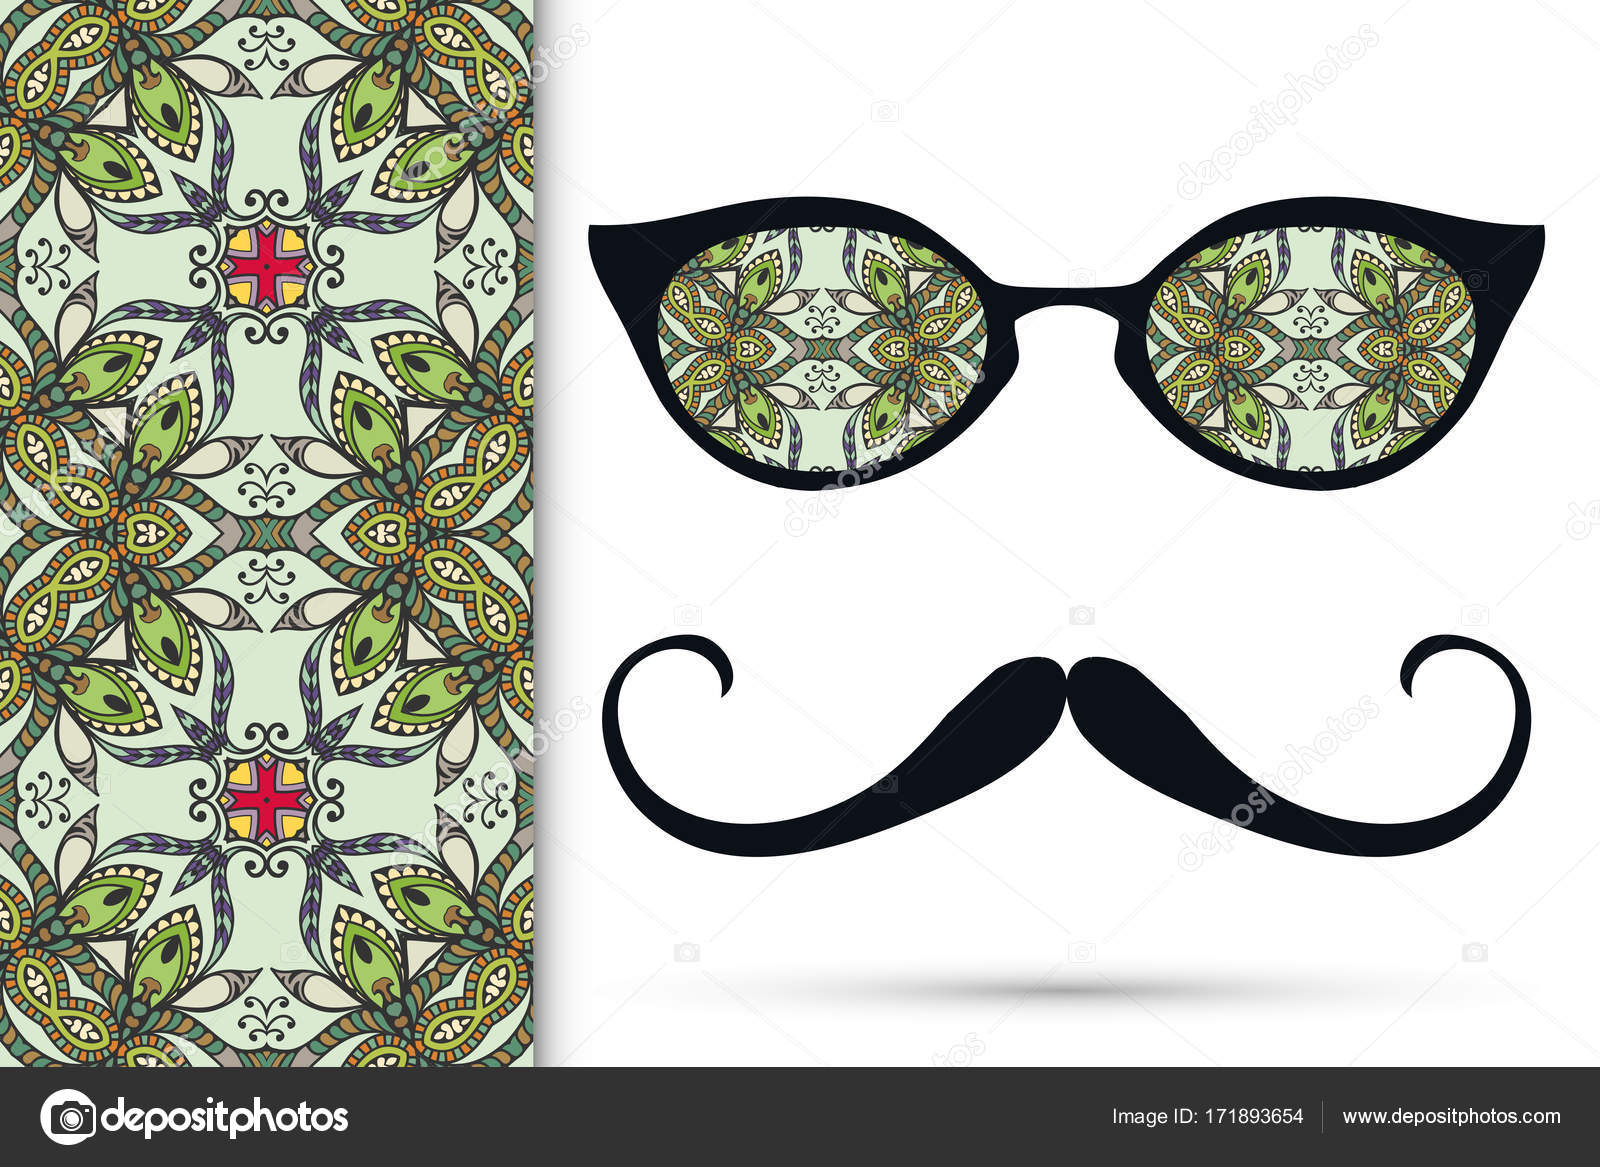 971dbeaa8cb Retro Hipster Ornate Sunglasses Mustaches Seamless Hand Drawn Pattern  Isolated — Stock Vector